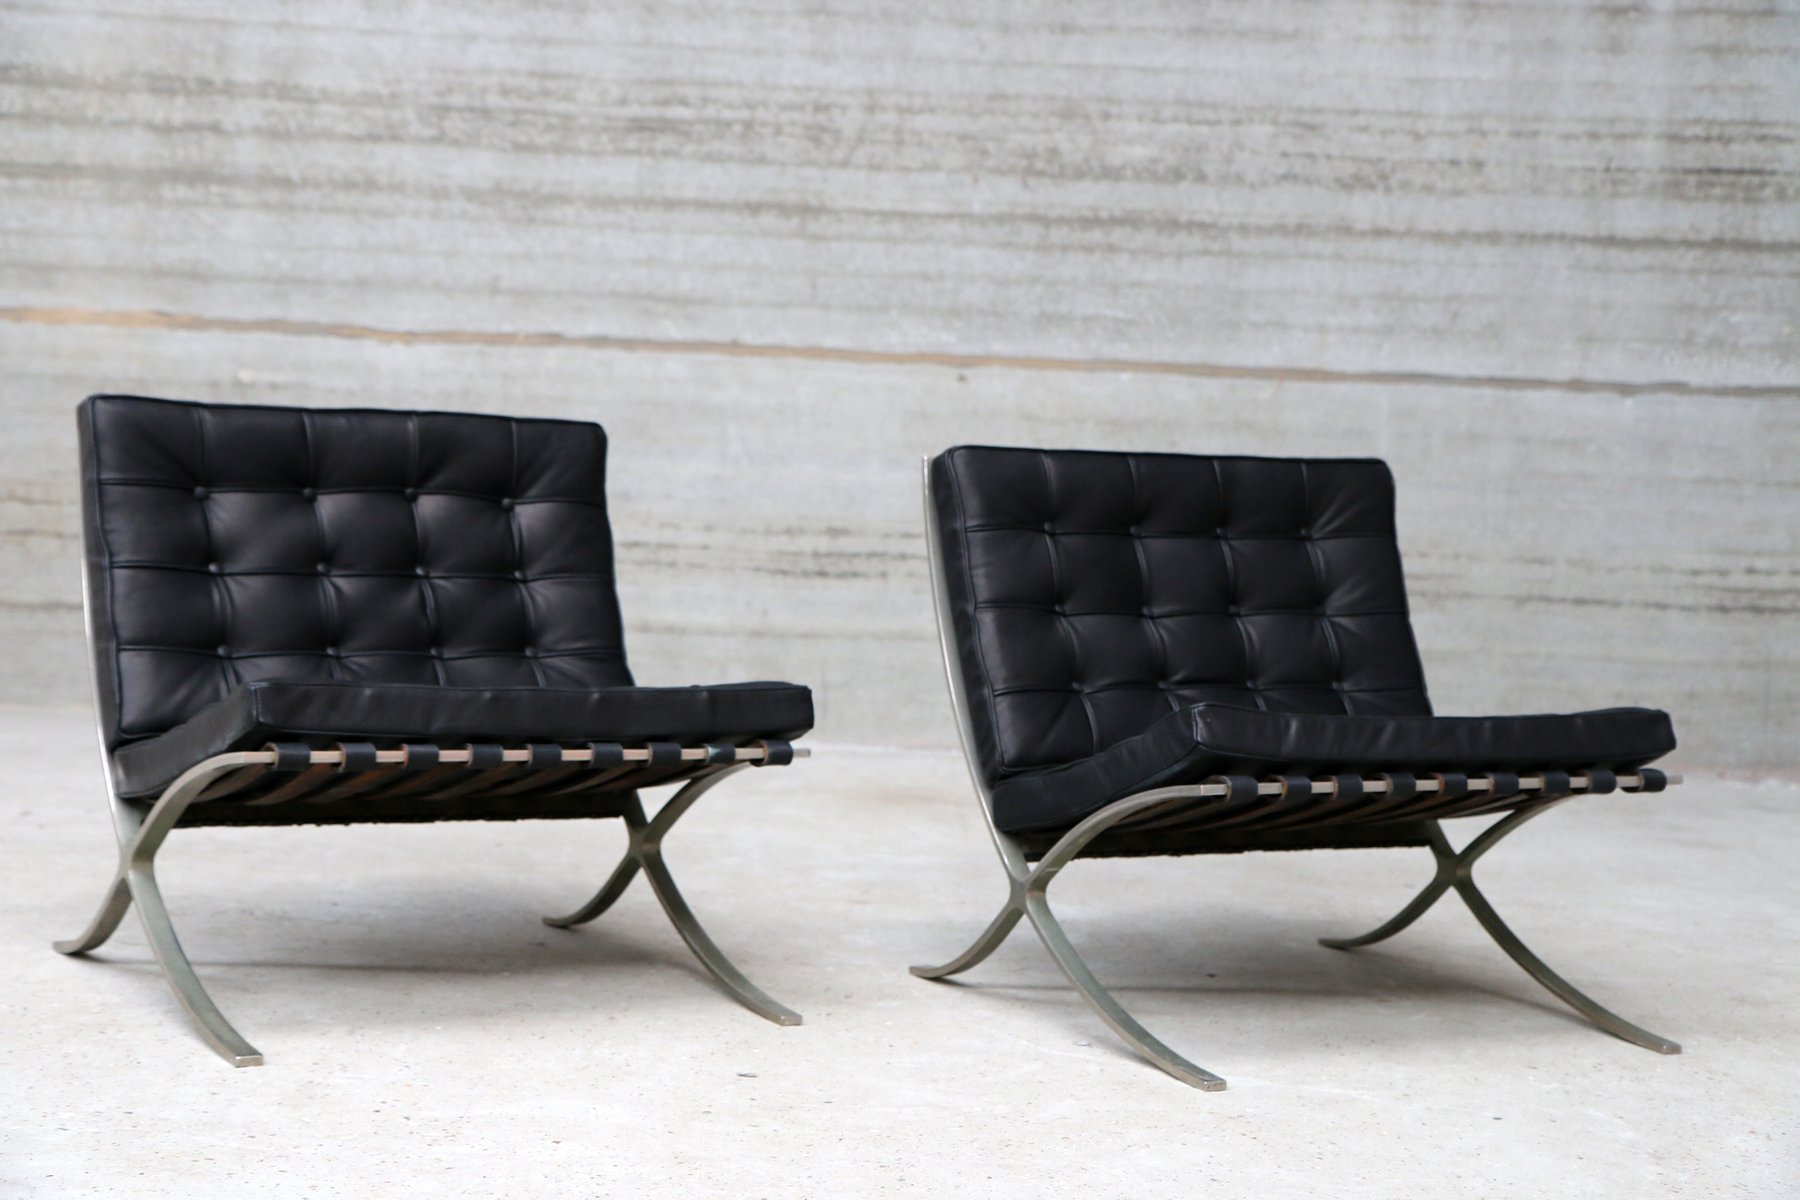 Vintage Barcelona Chairs by Ludwig Mies van der Rohe for Knoll